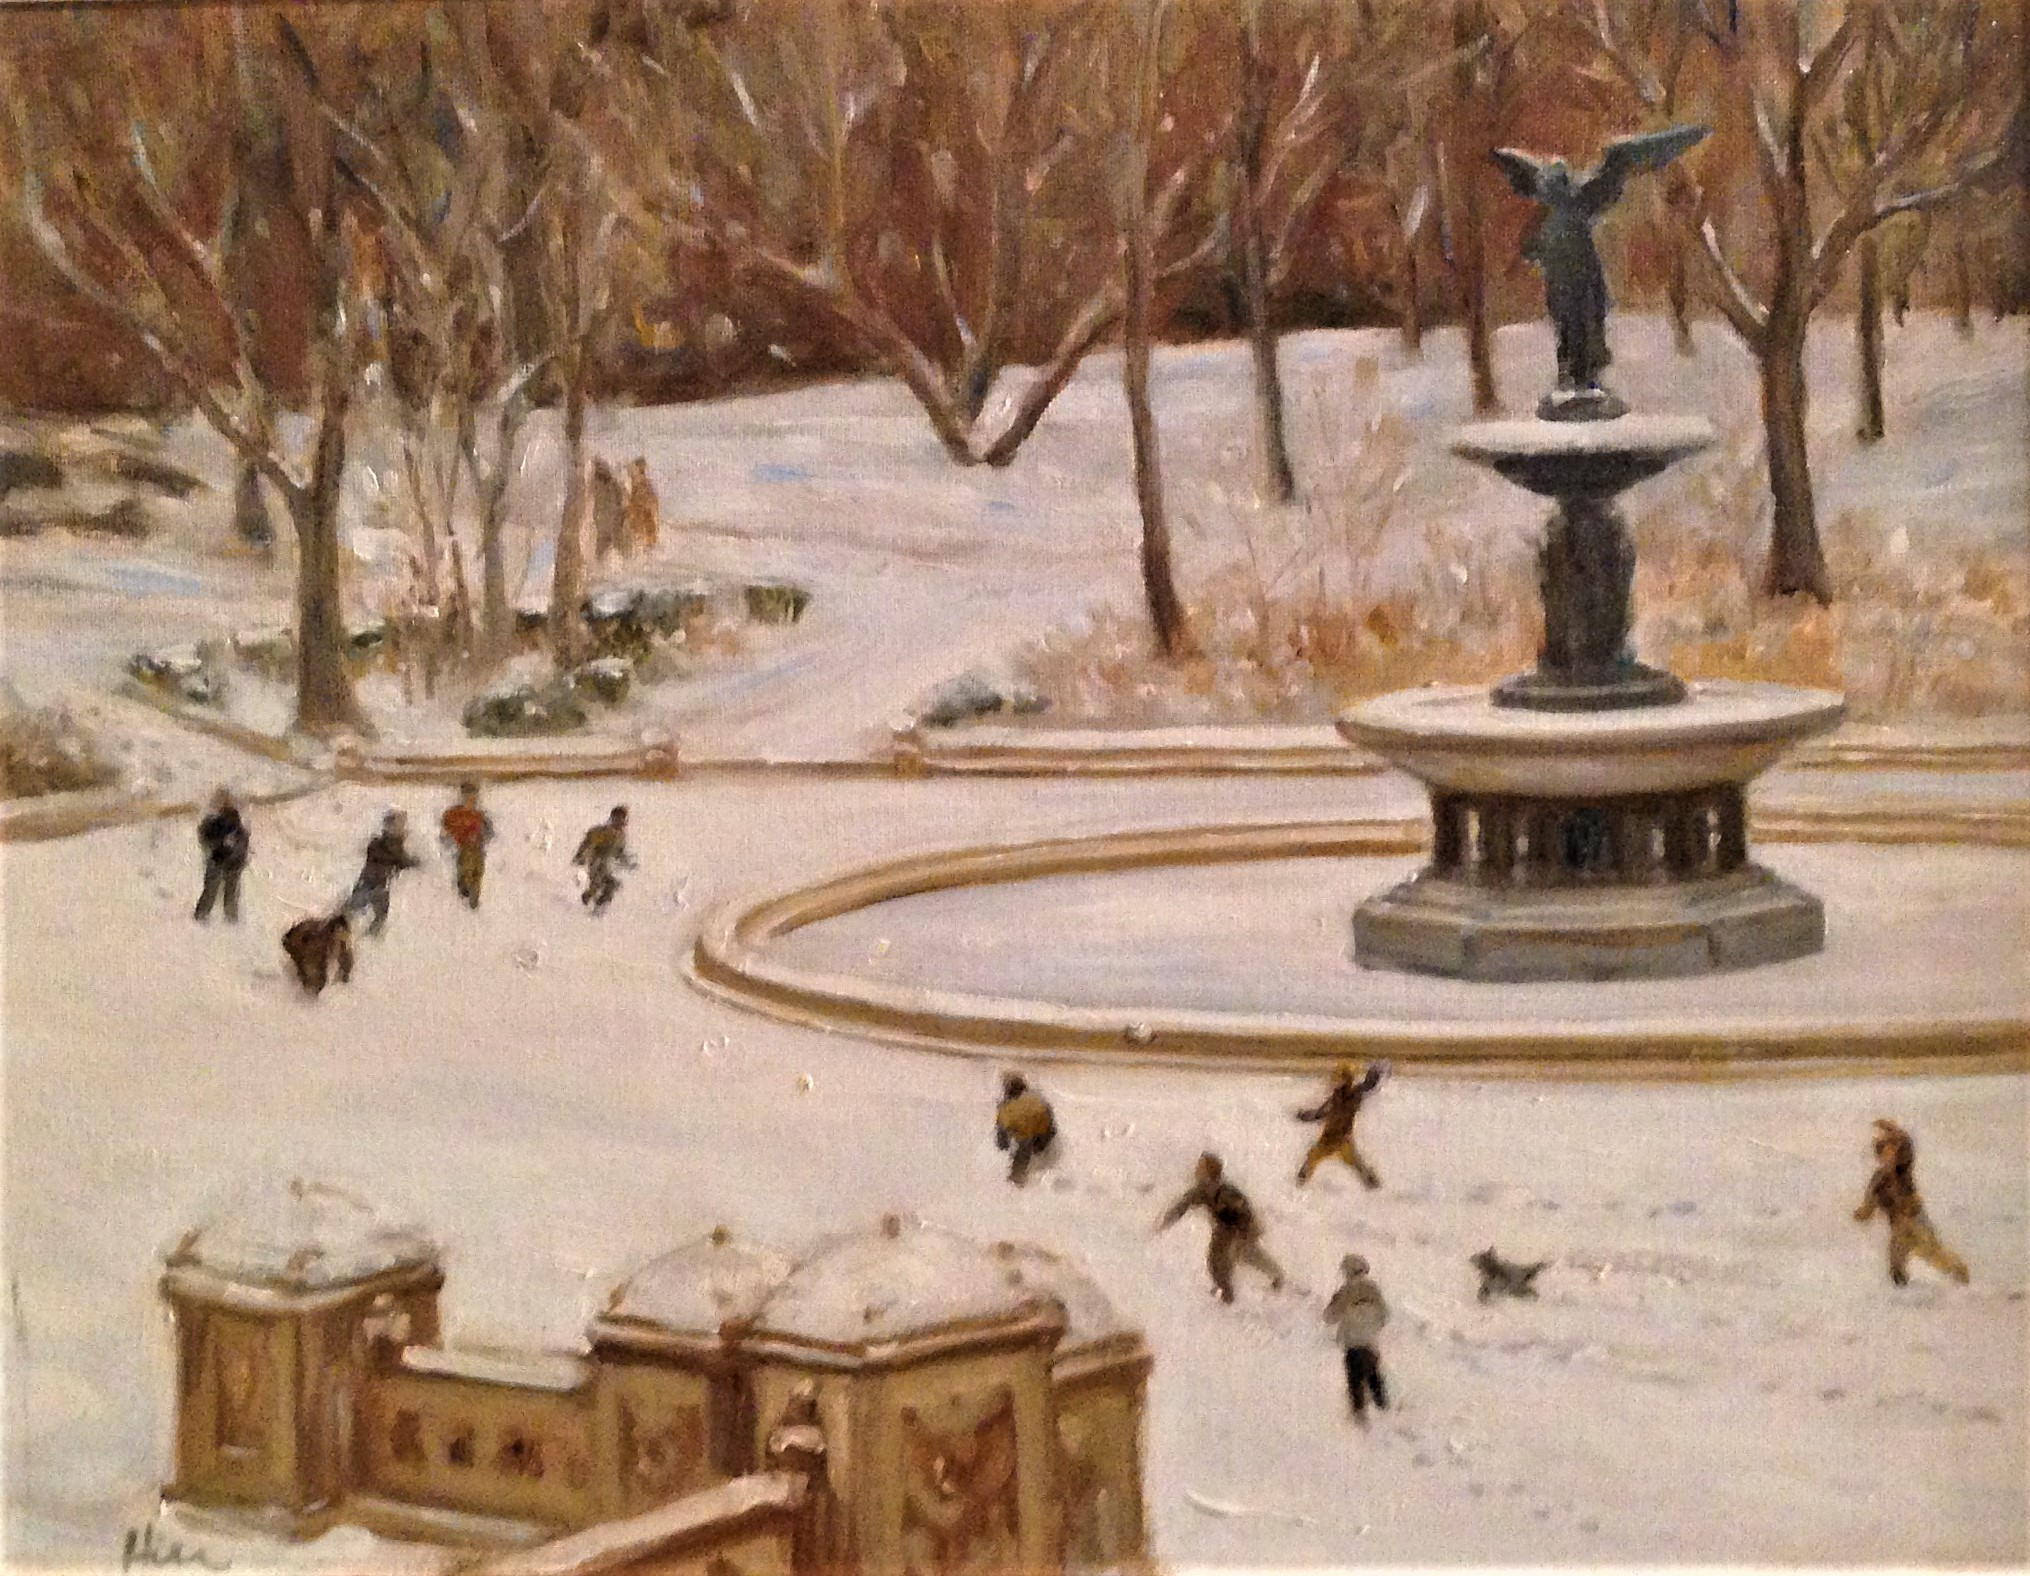 Snowball Fight at Bethesda Fountain